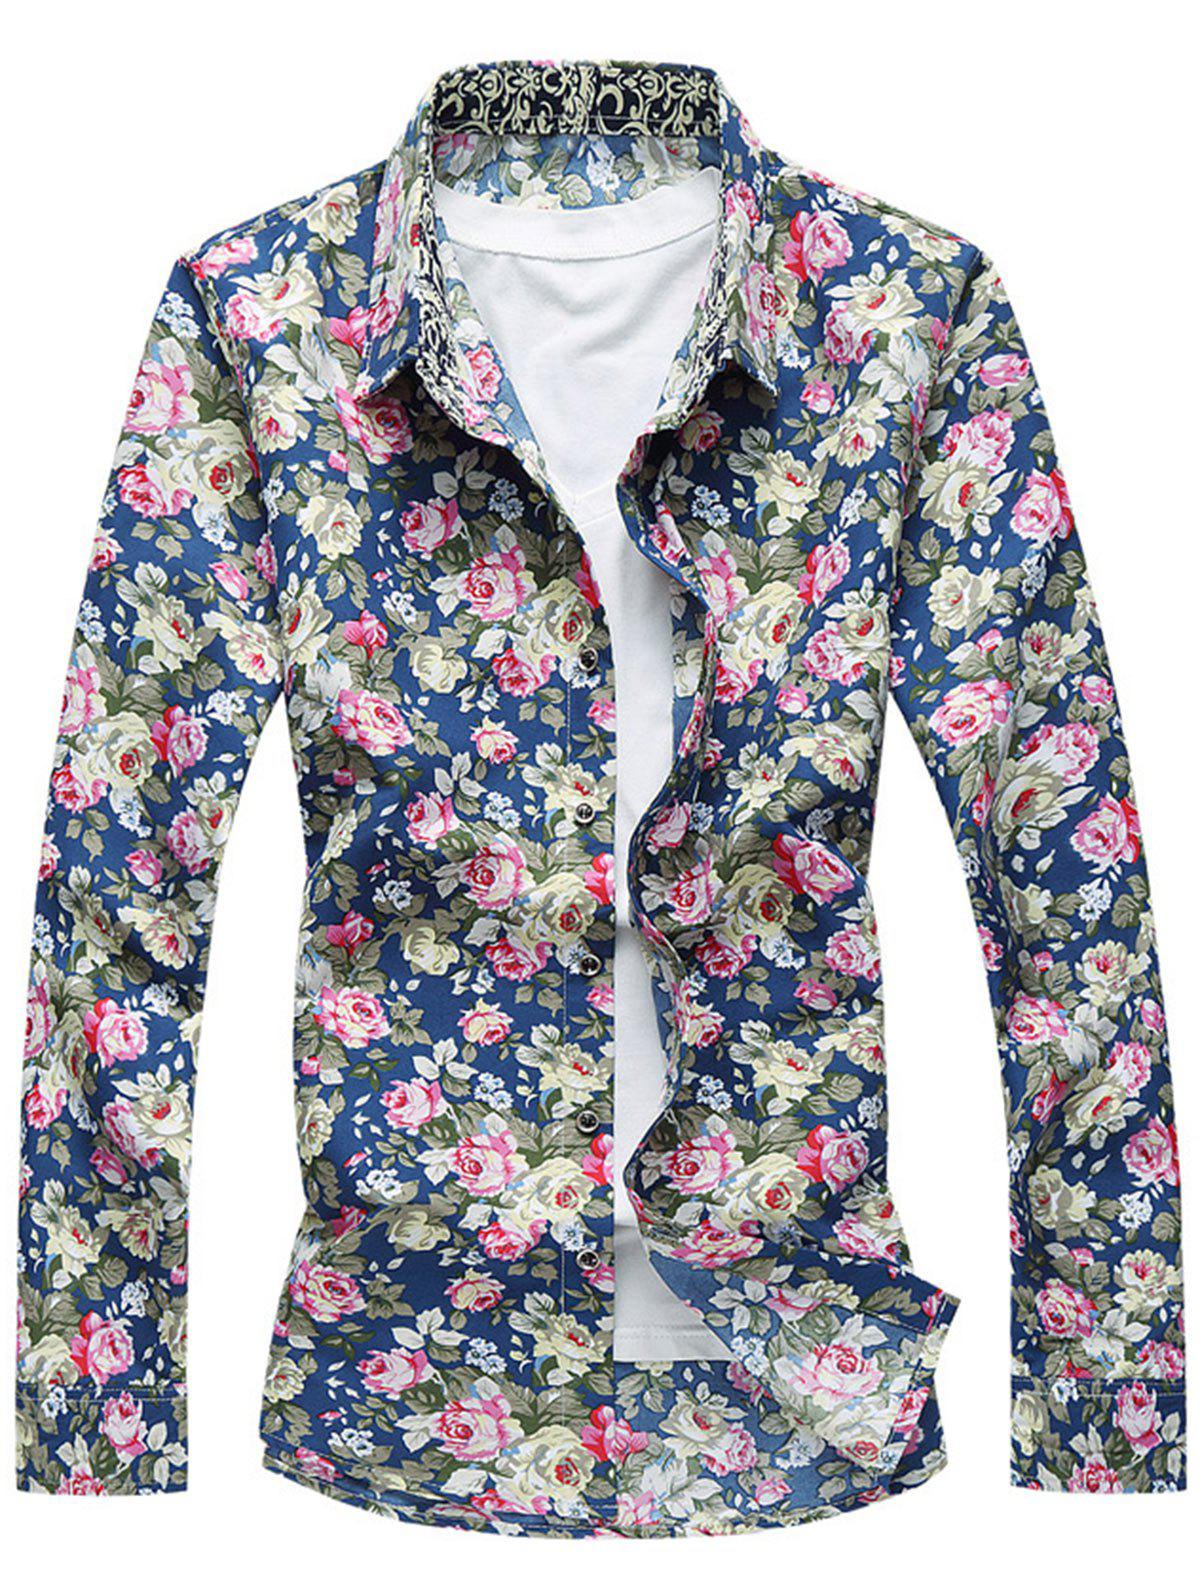 Button Front Flower Shirt - CADETBLUE XL